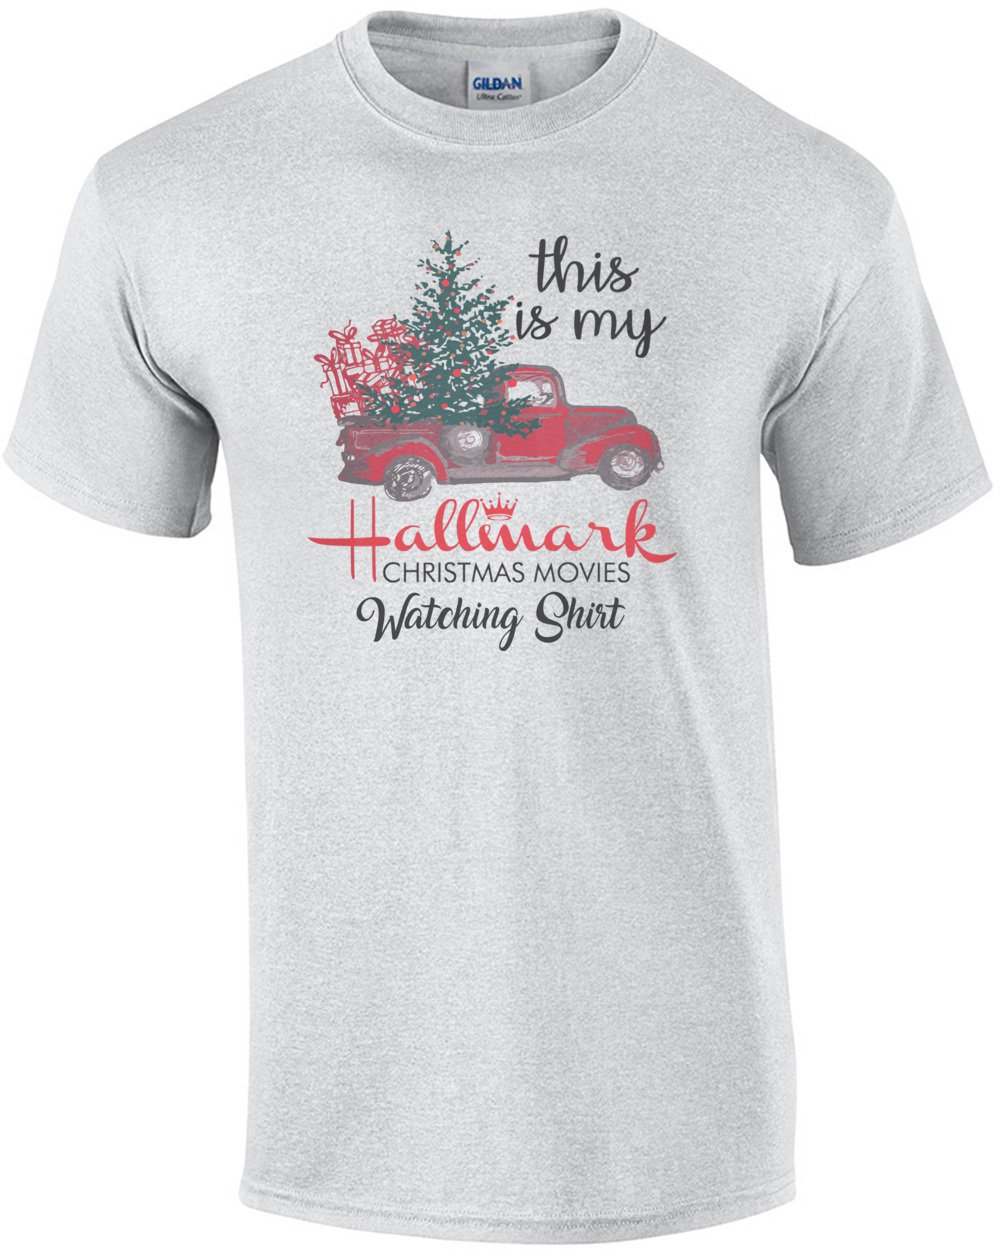 471d5414f95a1 this-is-my-hallmark-christmas-movies-watching-shirt-mens-regular-ash.jpg